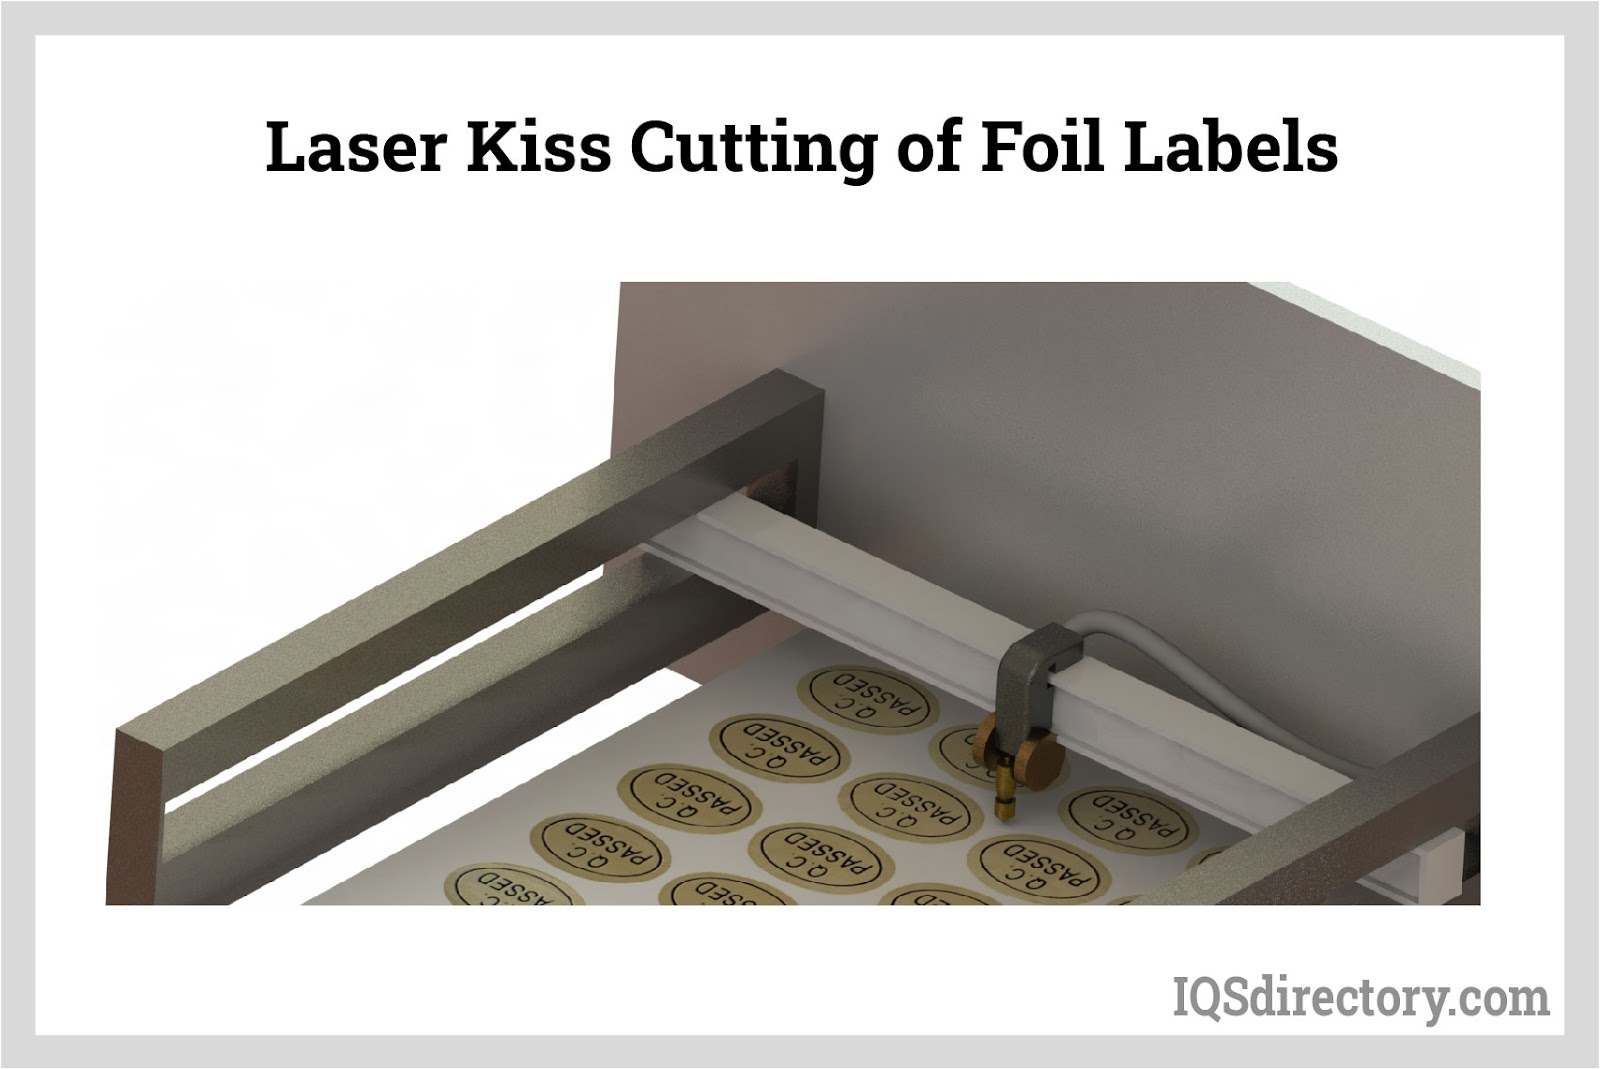 Laser Kiss Cutting of Foil Labels